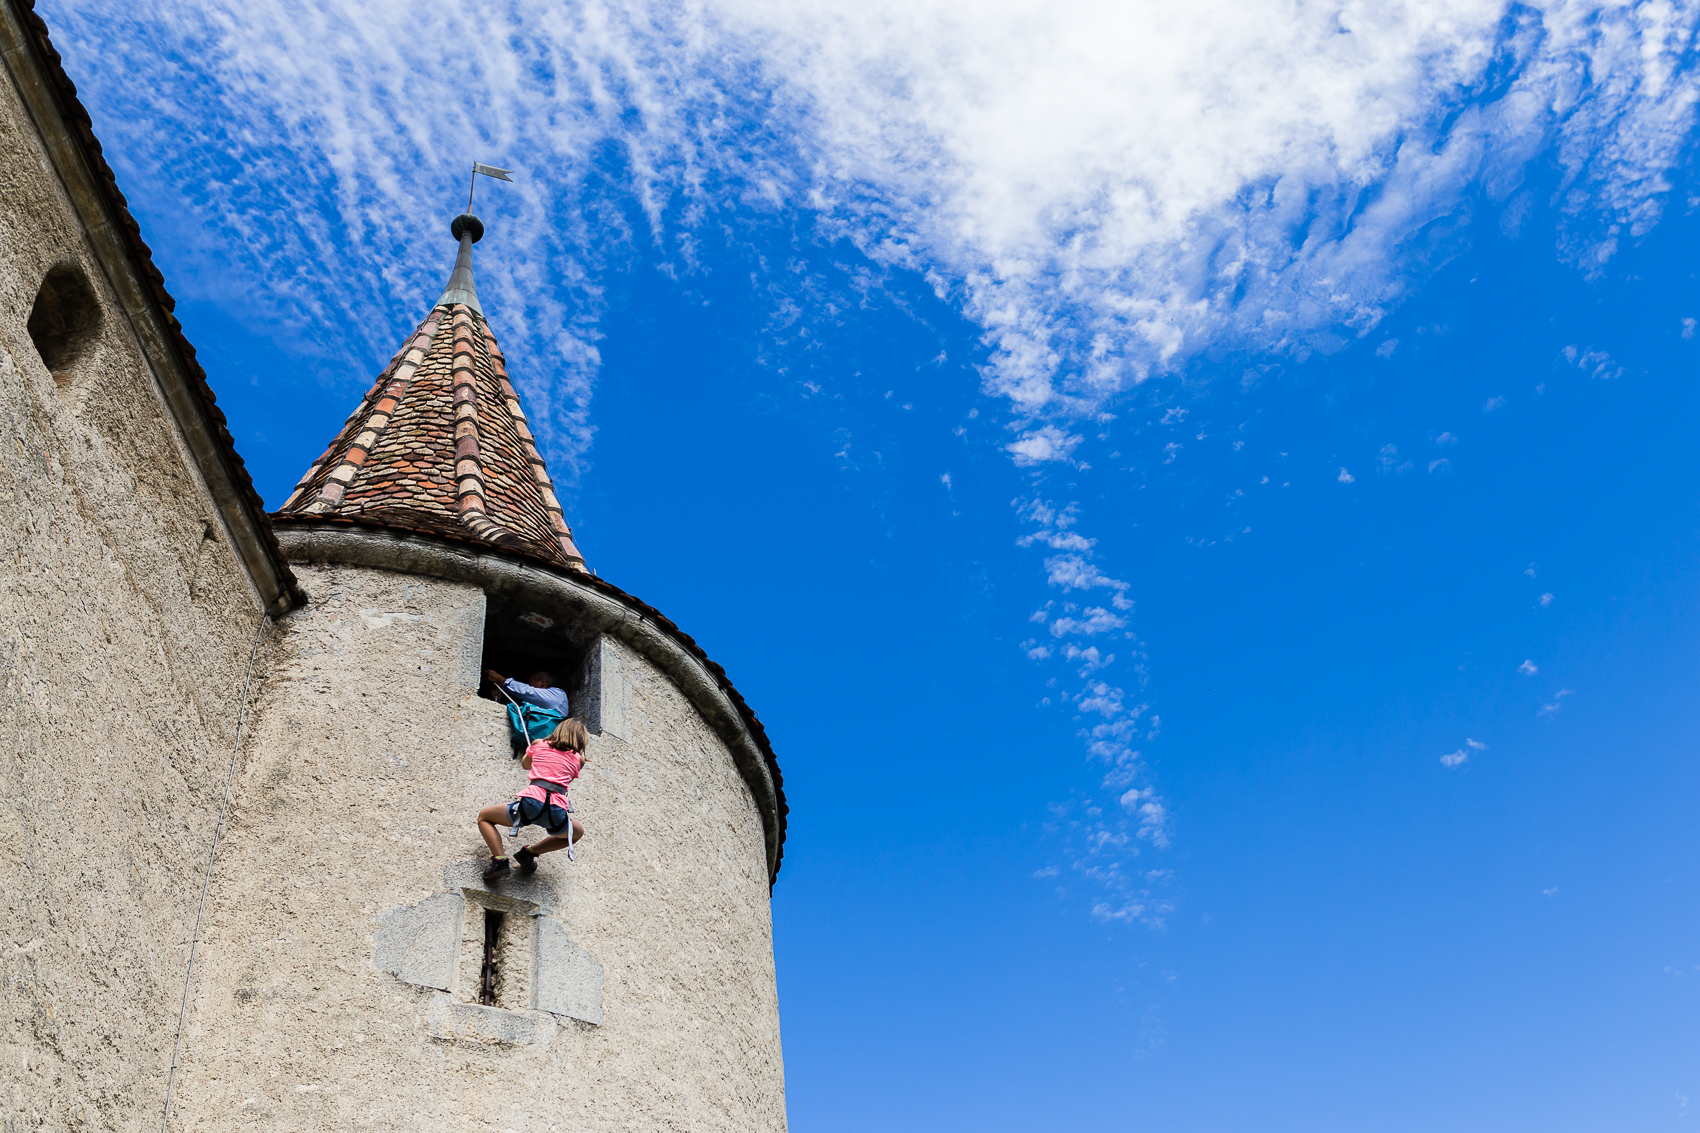 With not one moment of hesitation, she clipped herself onto the end of the rope ready to pull a rapunzel move all the way down the castle wall.